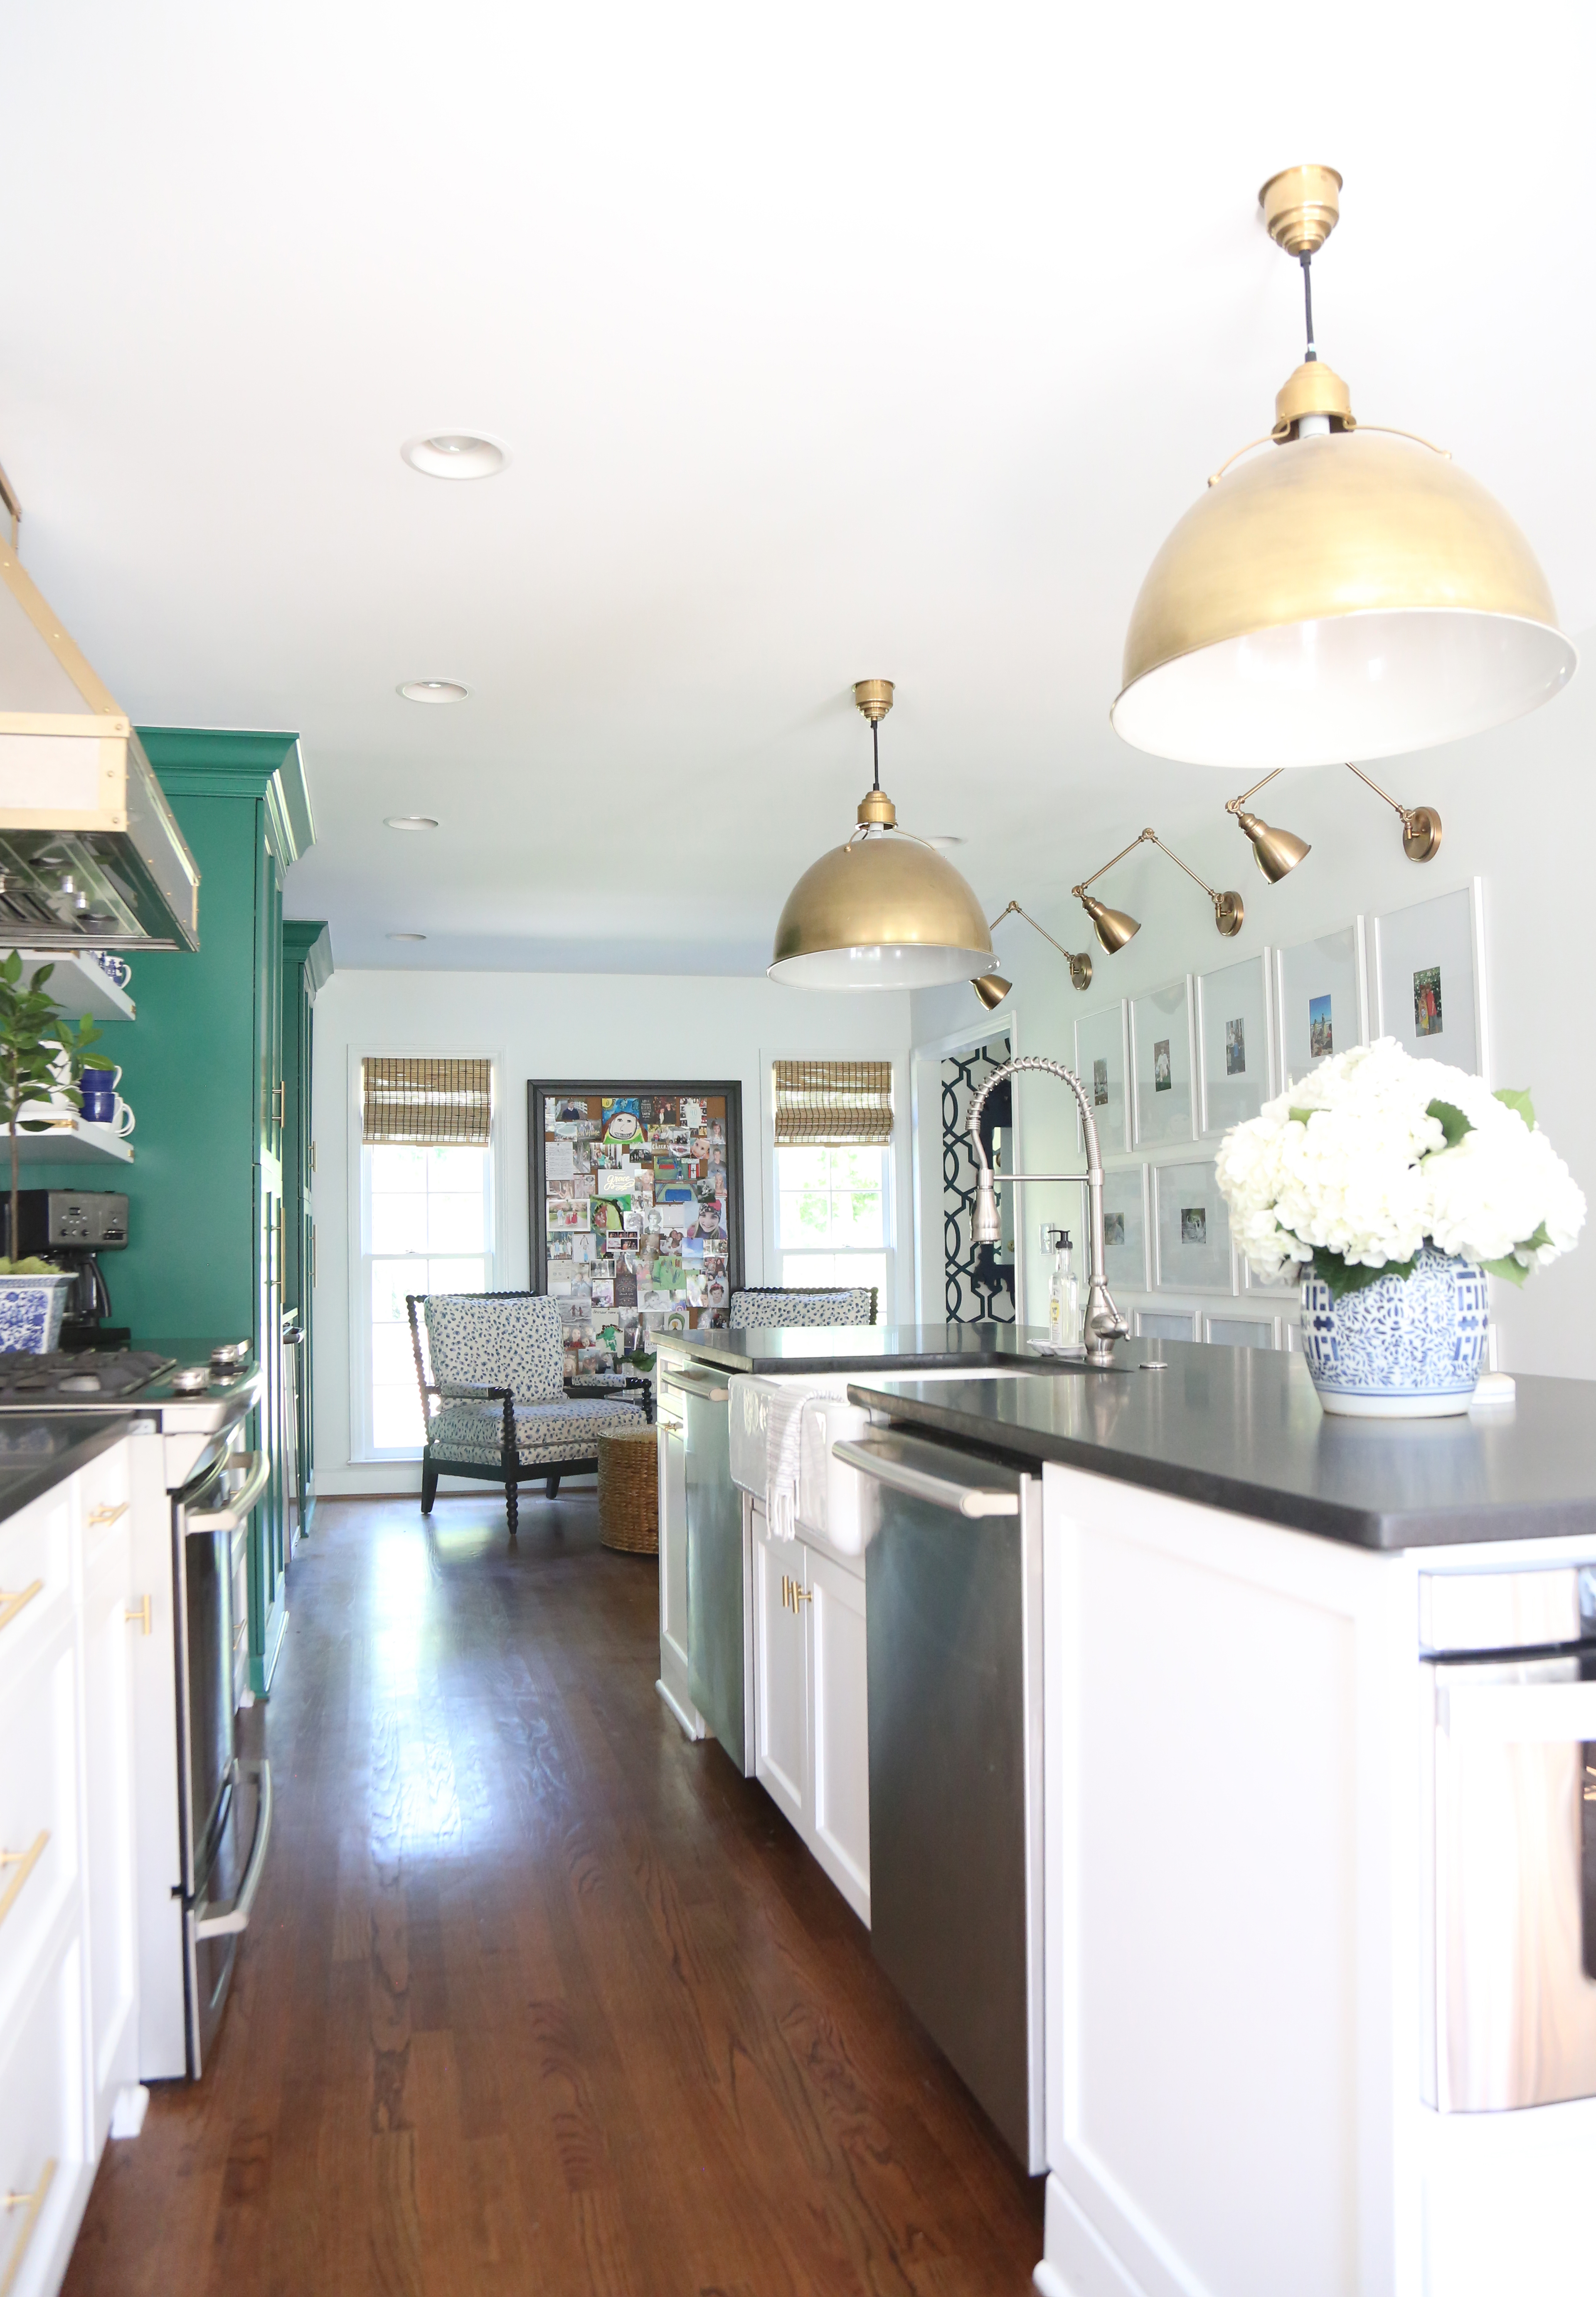 Our Green and White Kitchen Renovation - Emily A. Clark